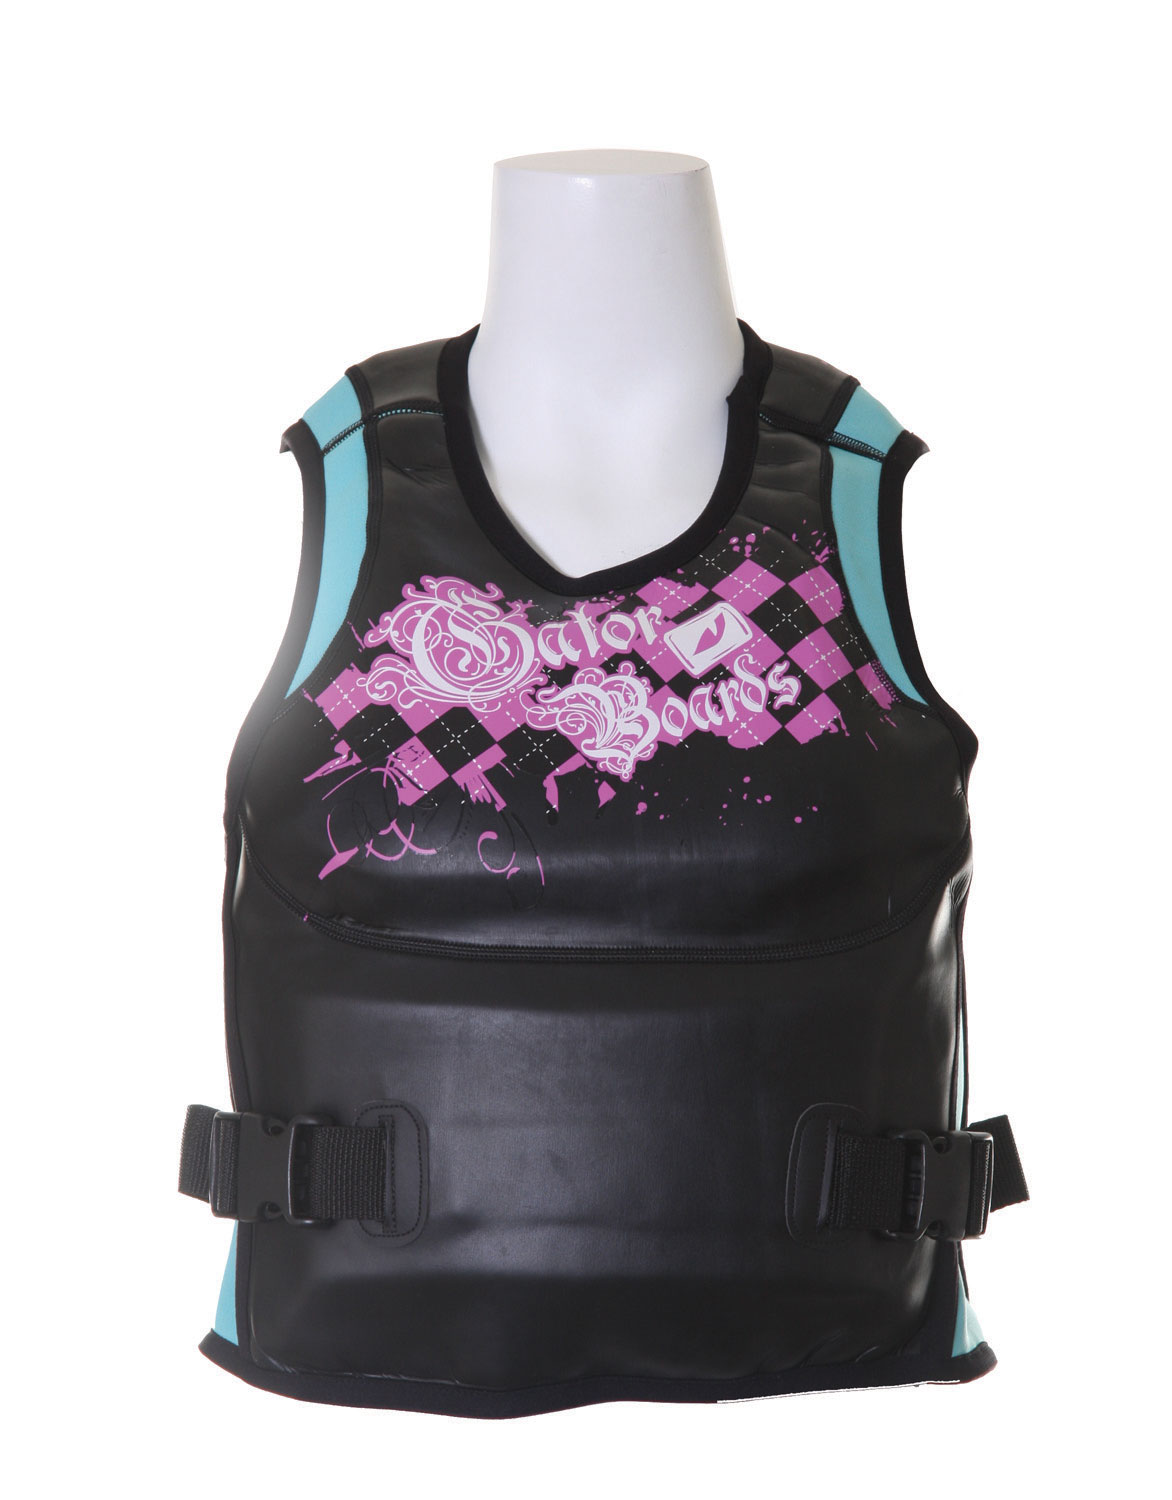 Gator Boards Pullover Comp Wakeboard Vest Womens by Gator Boards